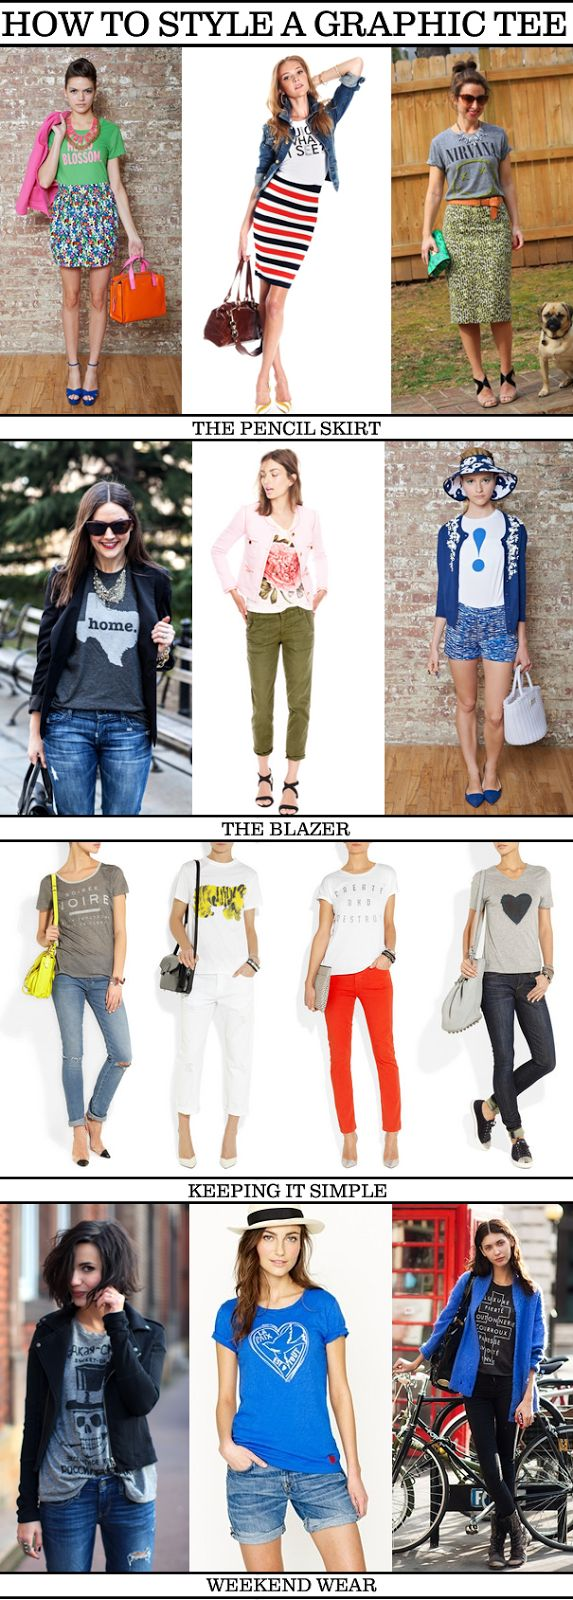 Ruffles & Sequins || a style blog: Graphic Tees, please!